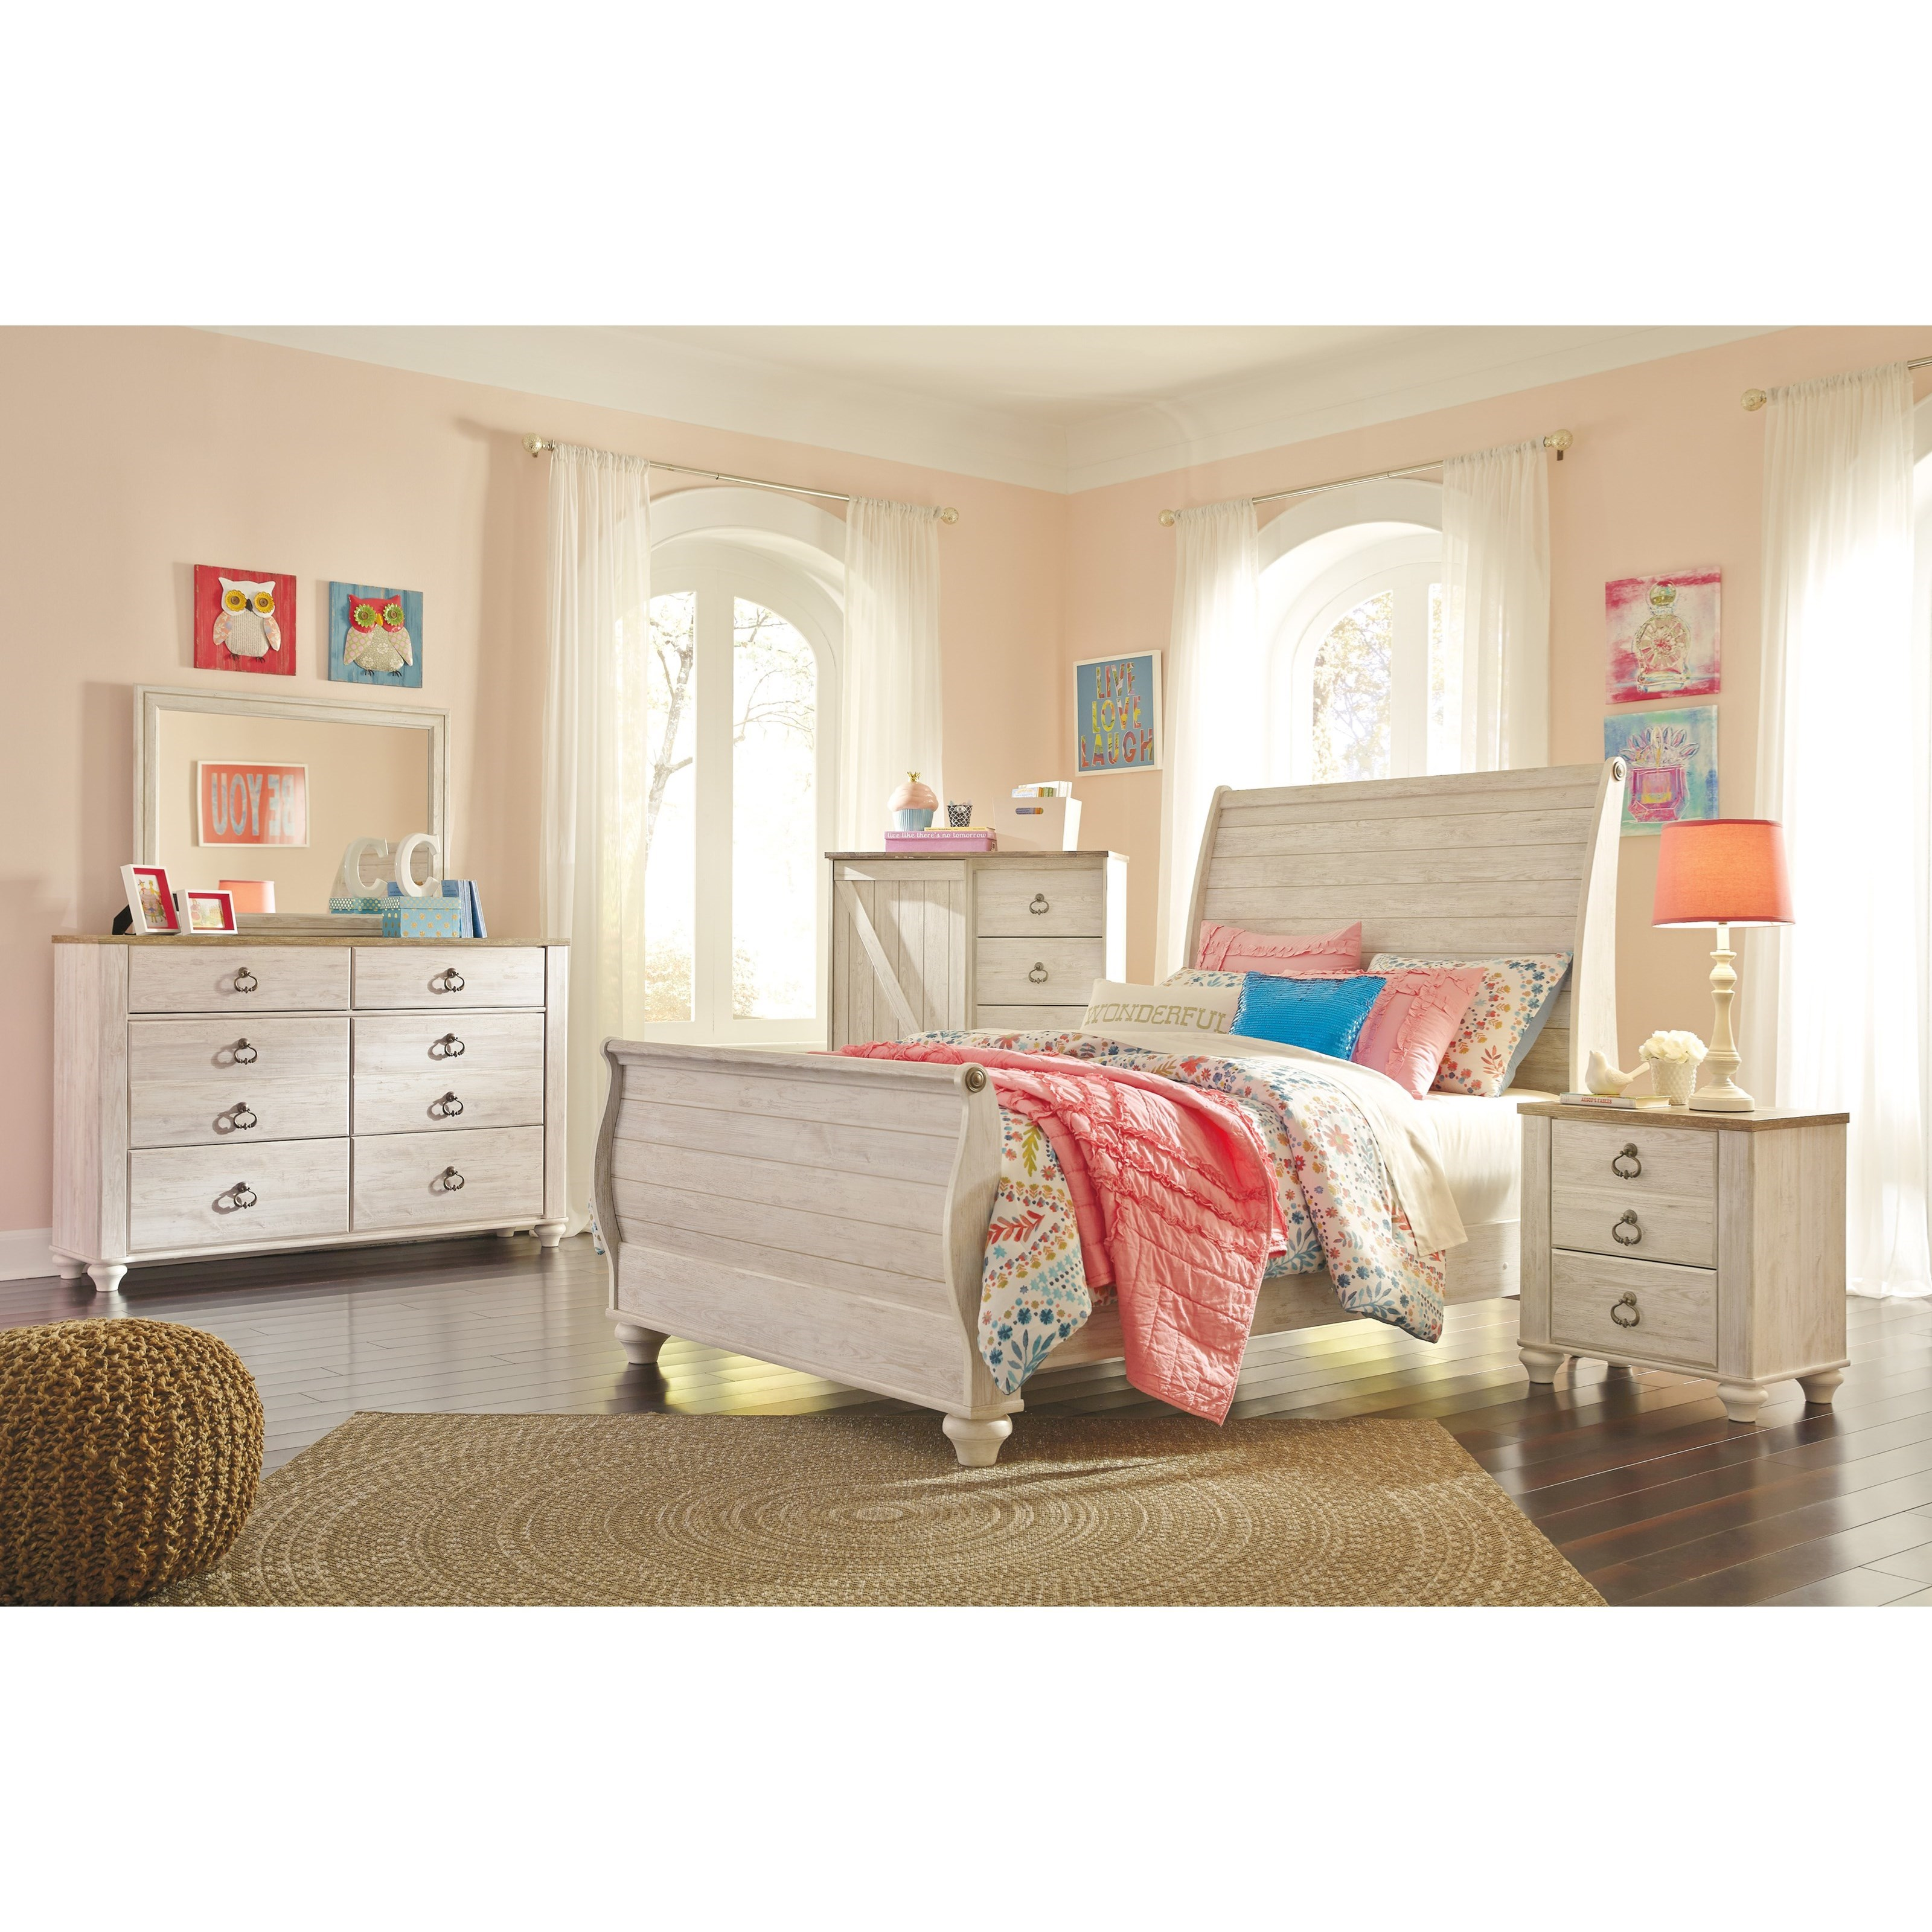 Signature Design by Ashley Willowton Full Bedroom Group - Item Number: B267 F Bedroom Group 2